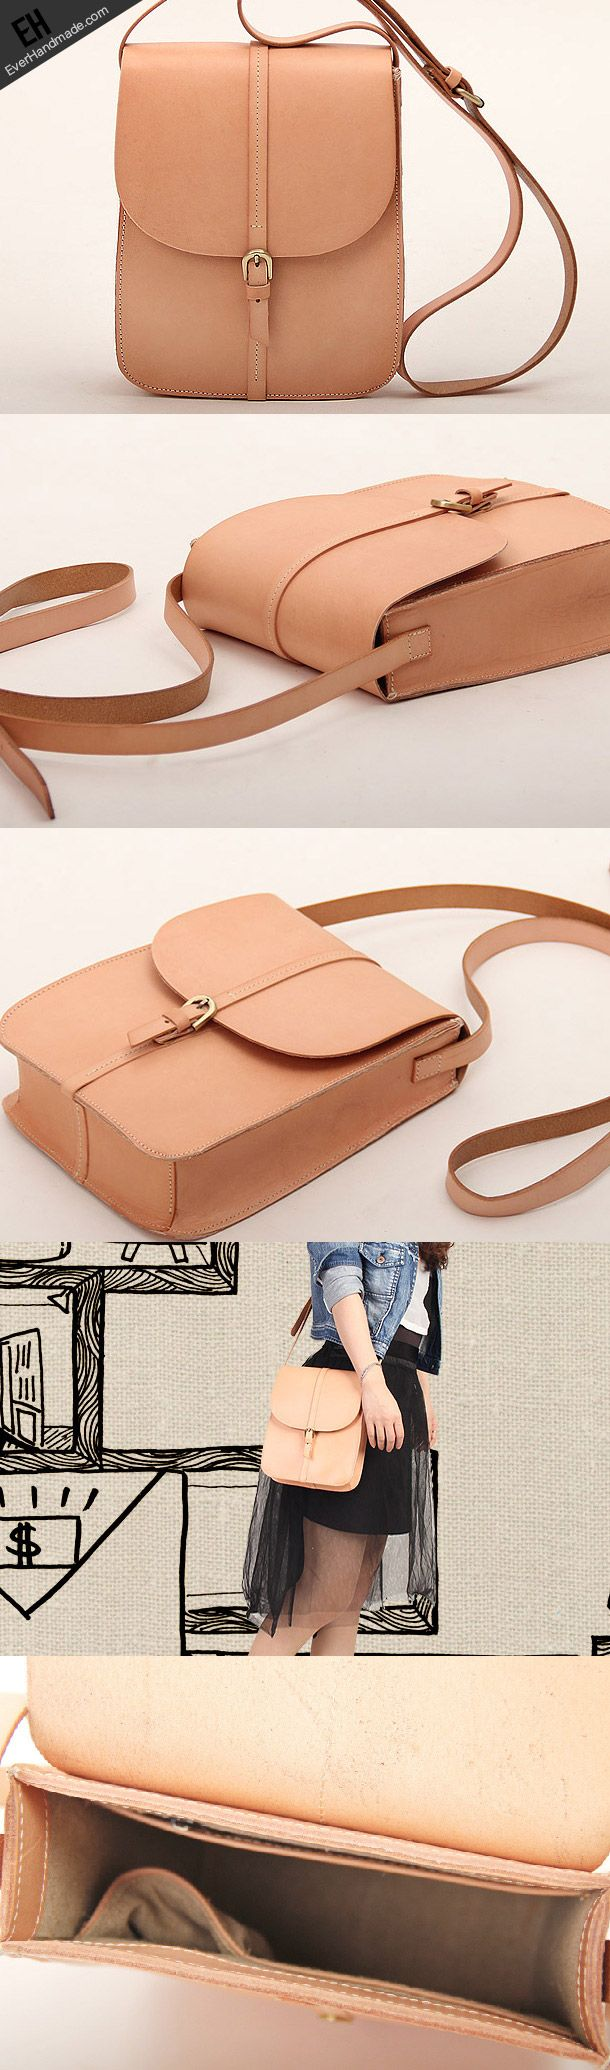 Handmade vintage leather saddle messenger crossbody Shoulder Bag for women